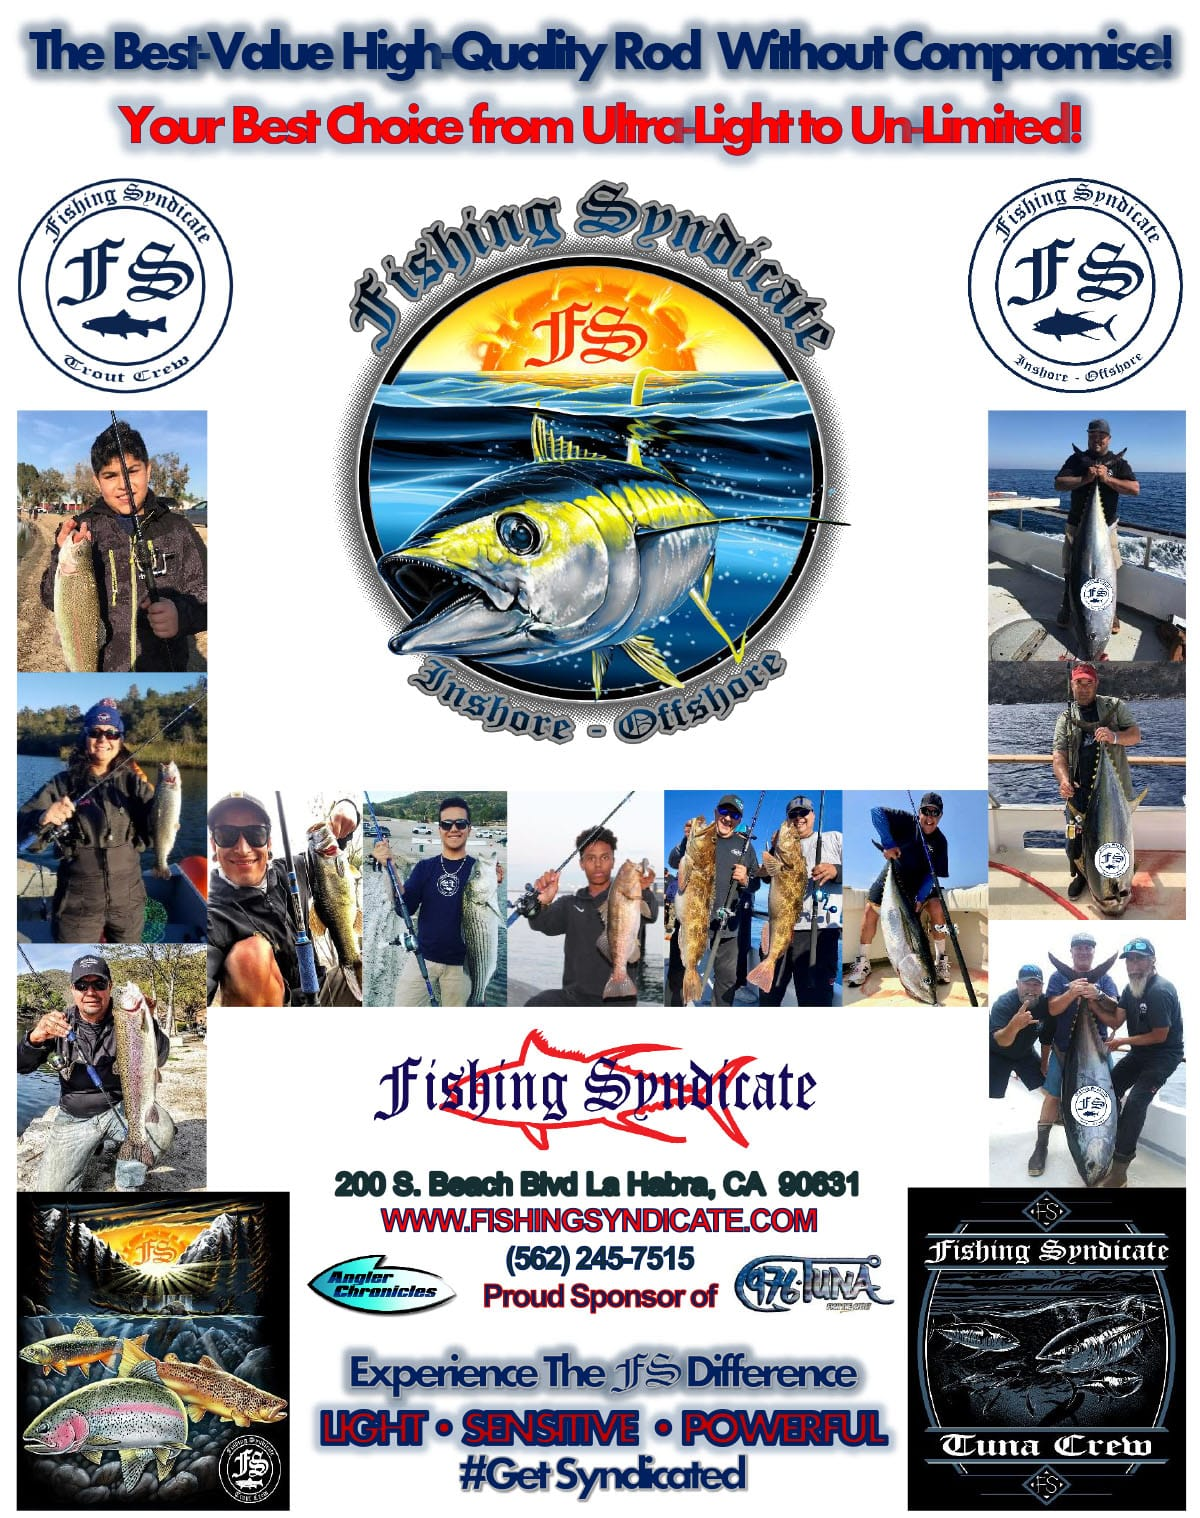 Fishing Syndicate rods